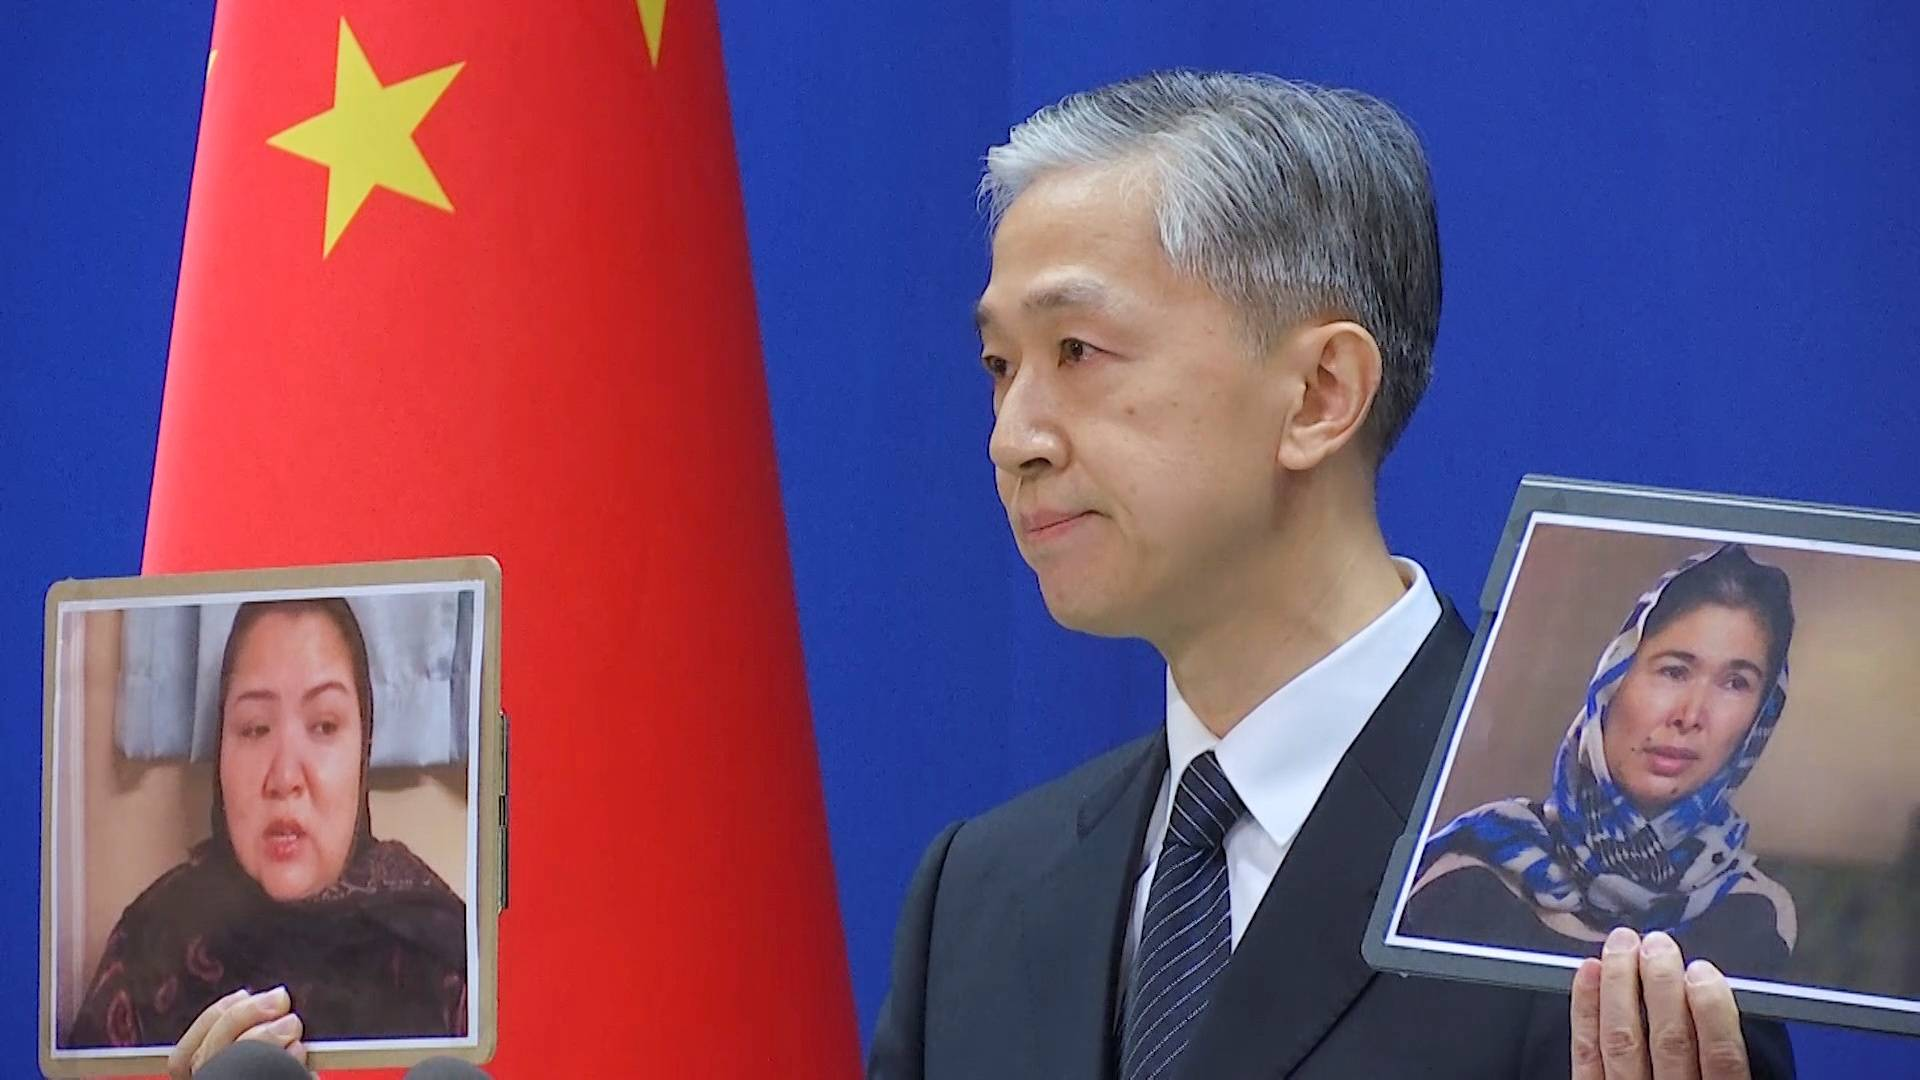 Chinese Foreign Ministry spokesman Wang Wenbin speaks during a news conference in Beijing on Feb. 23. | REUTERS TV / VIA REUTERS